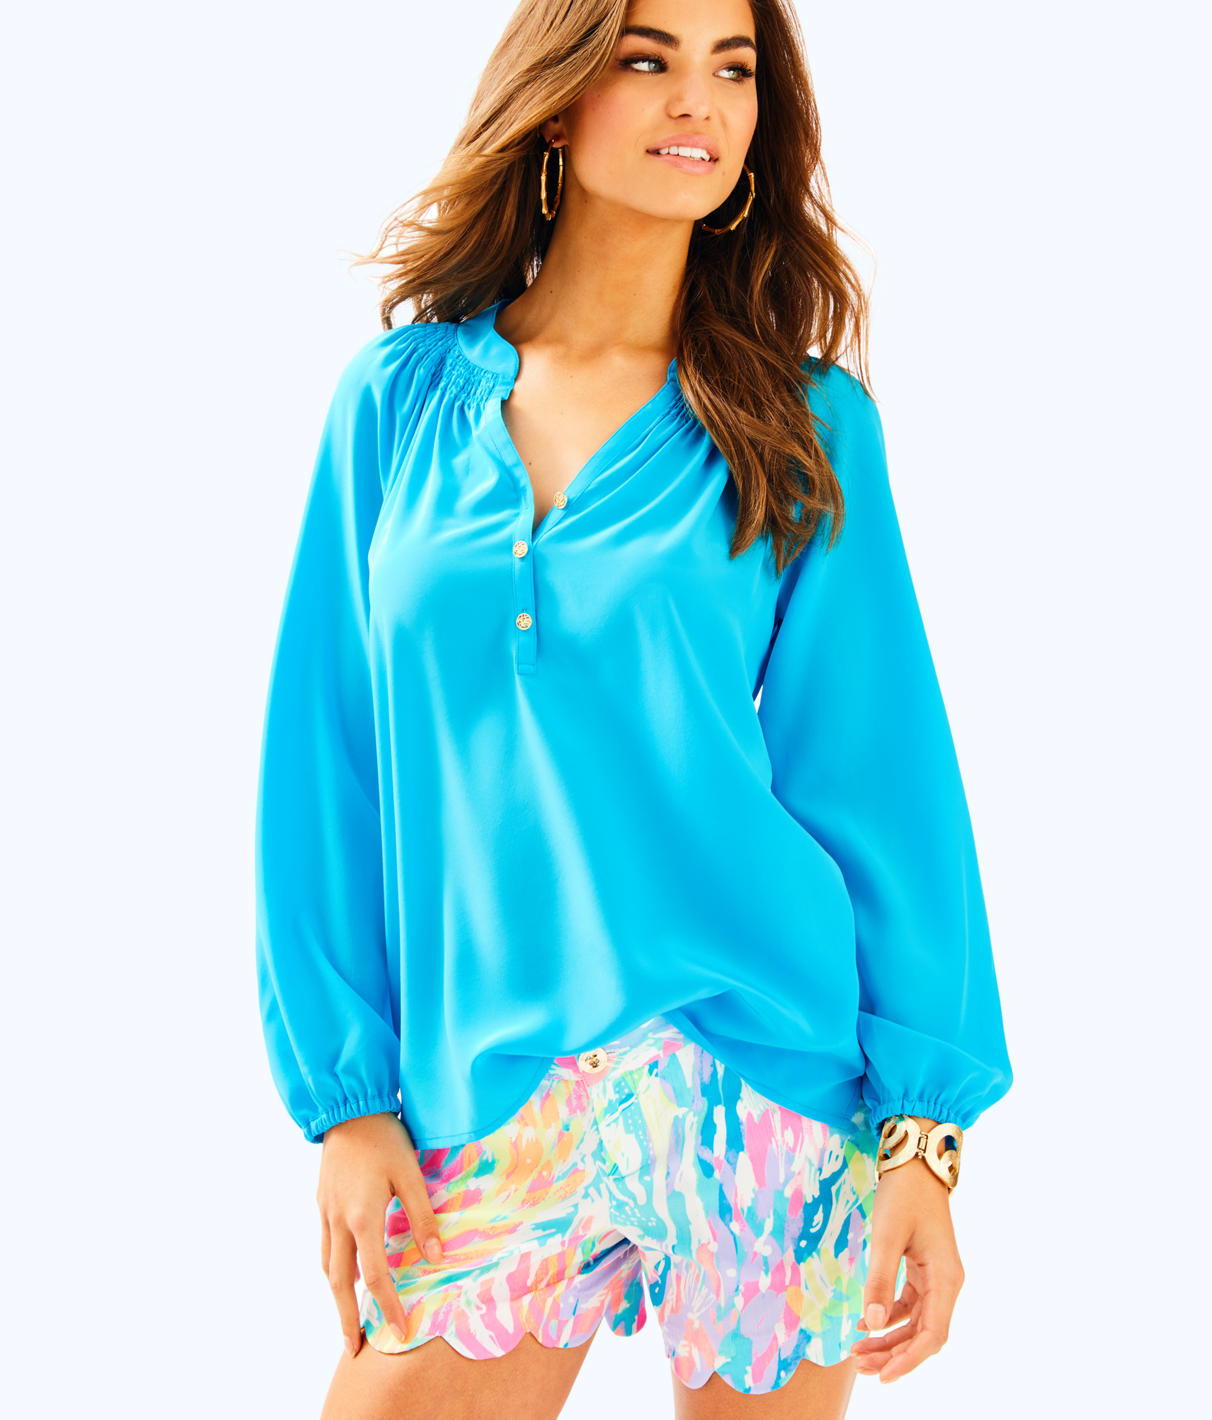 Lilly Pulitzer Lilly Pulitzer Womens Elsa Silk Top